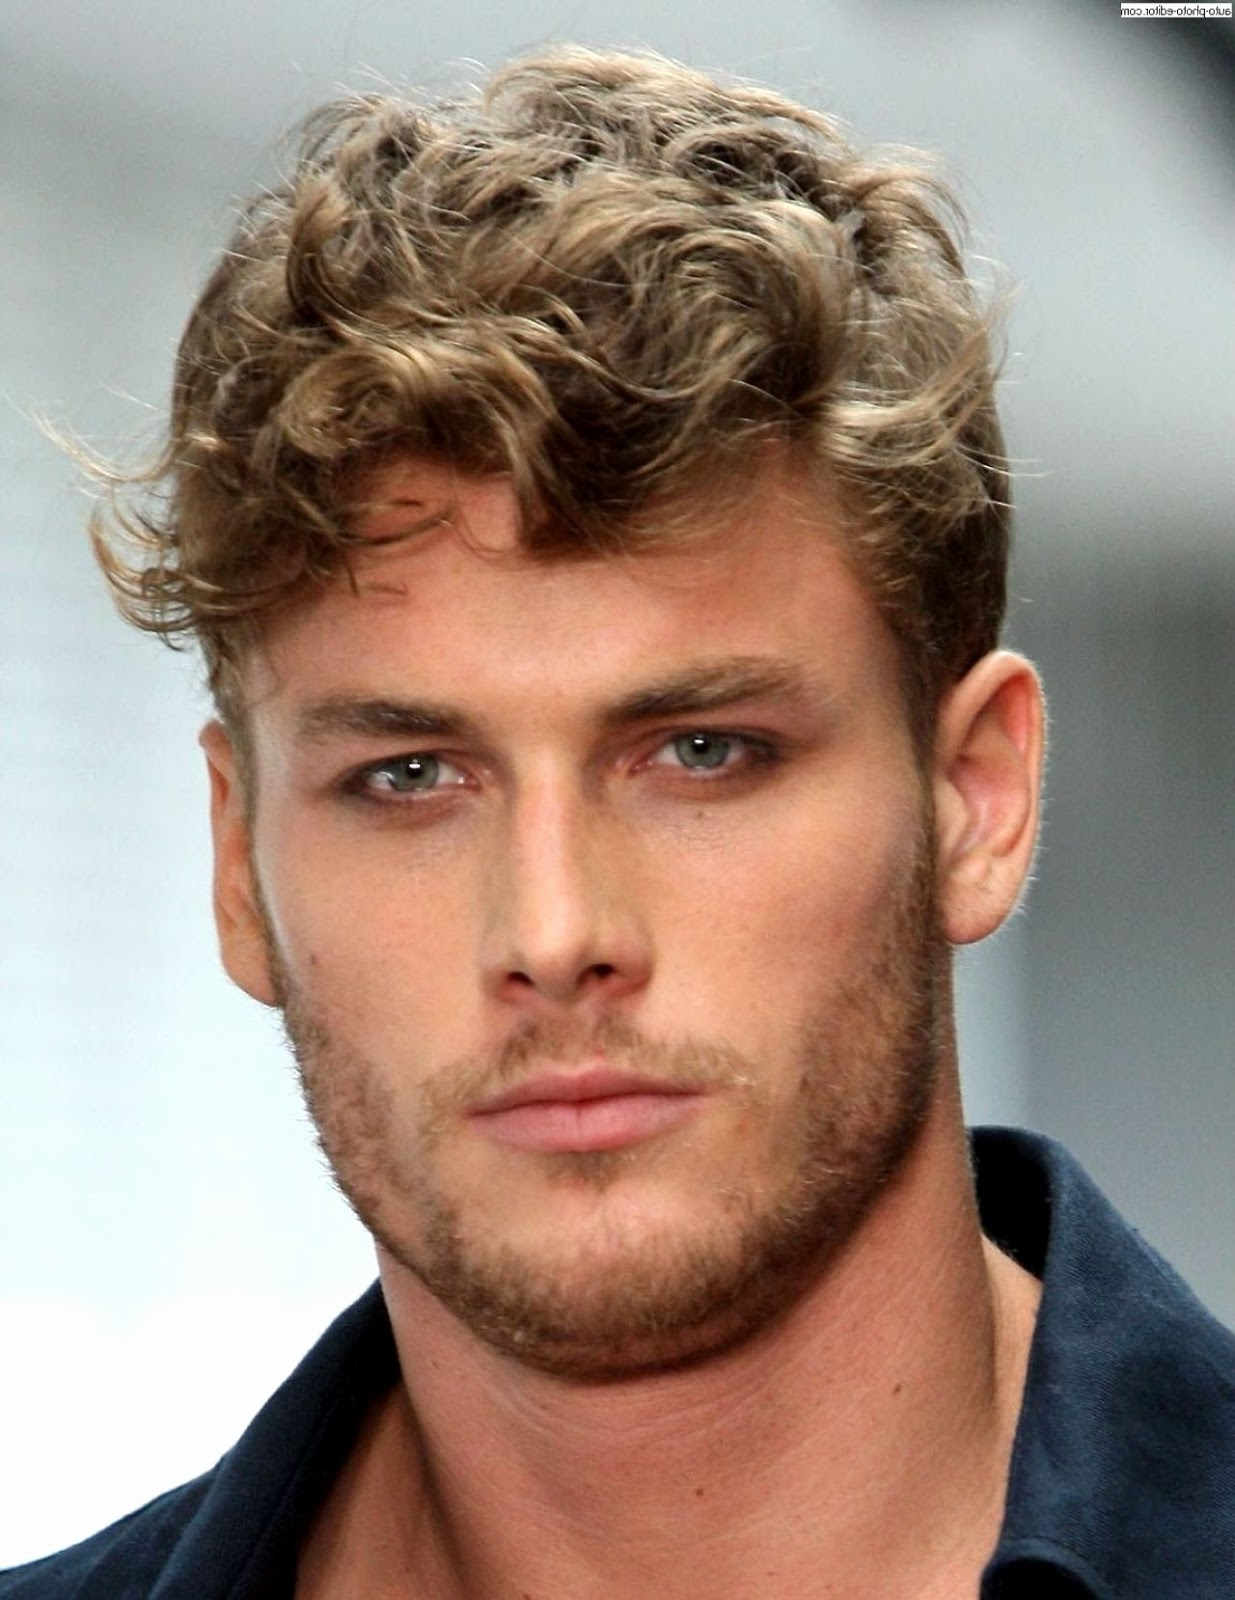 Cool Haircuts For Men Fashions Style And Hairstyle